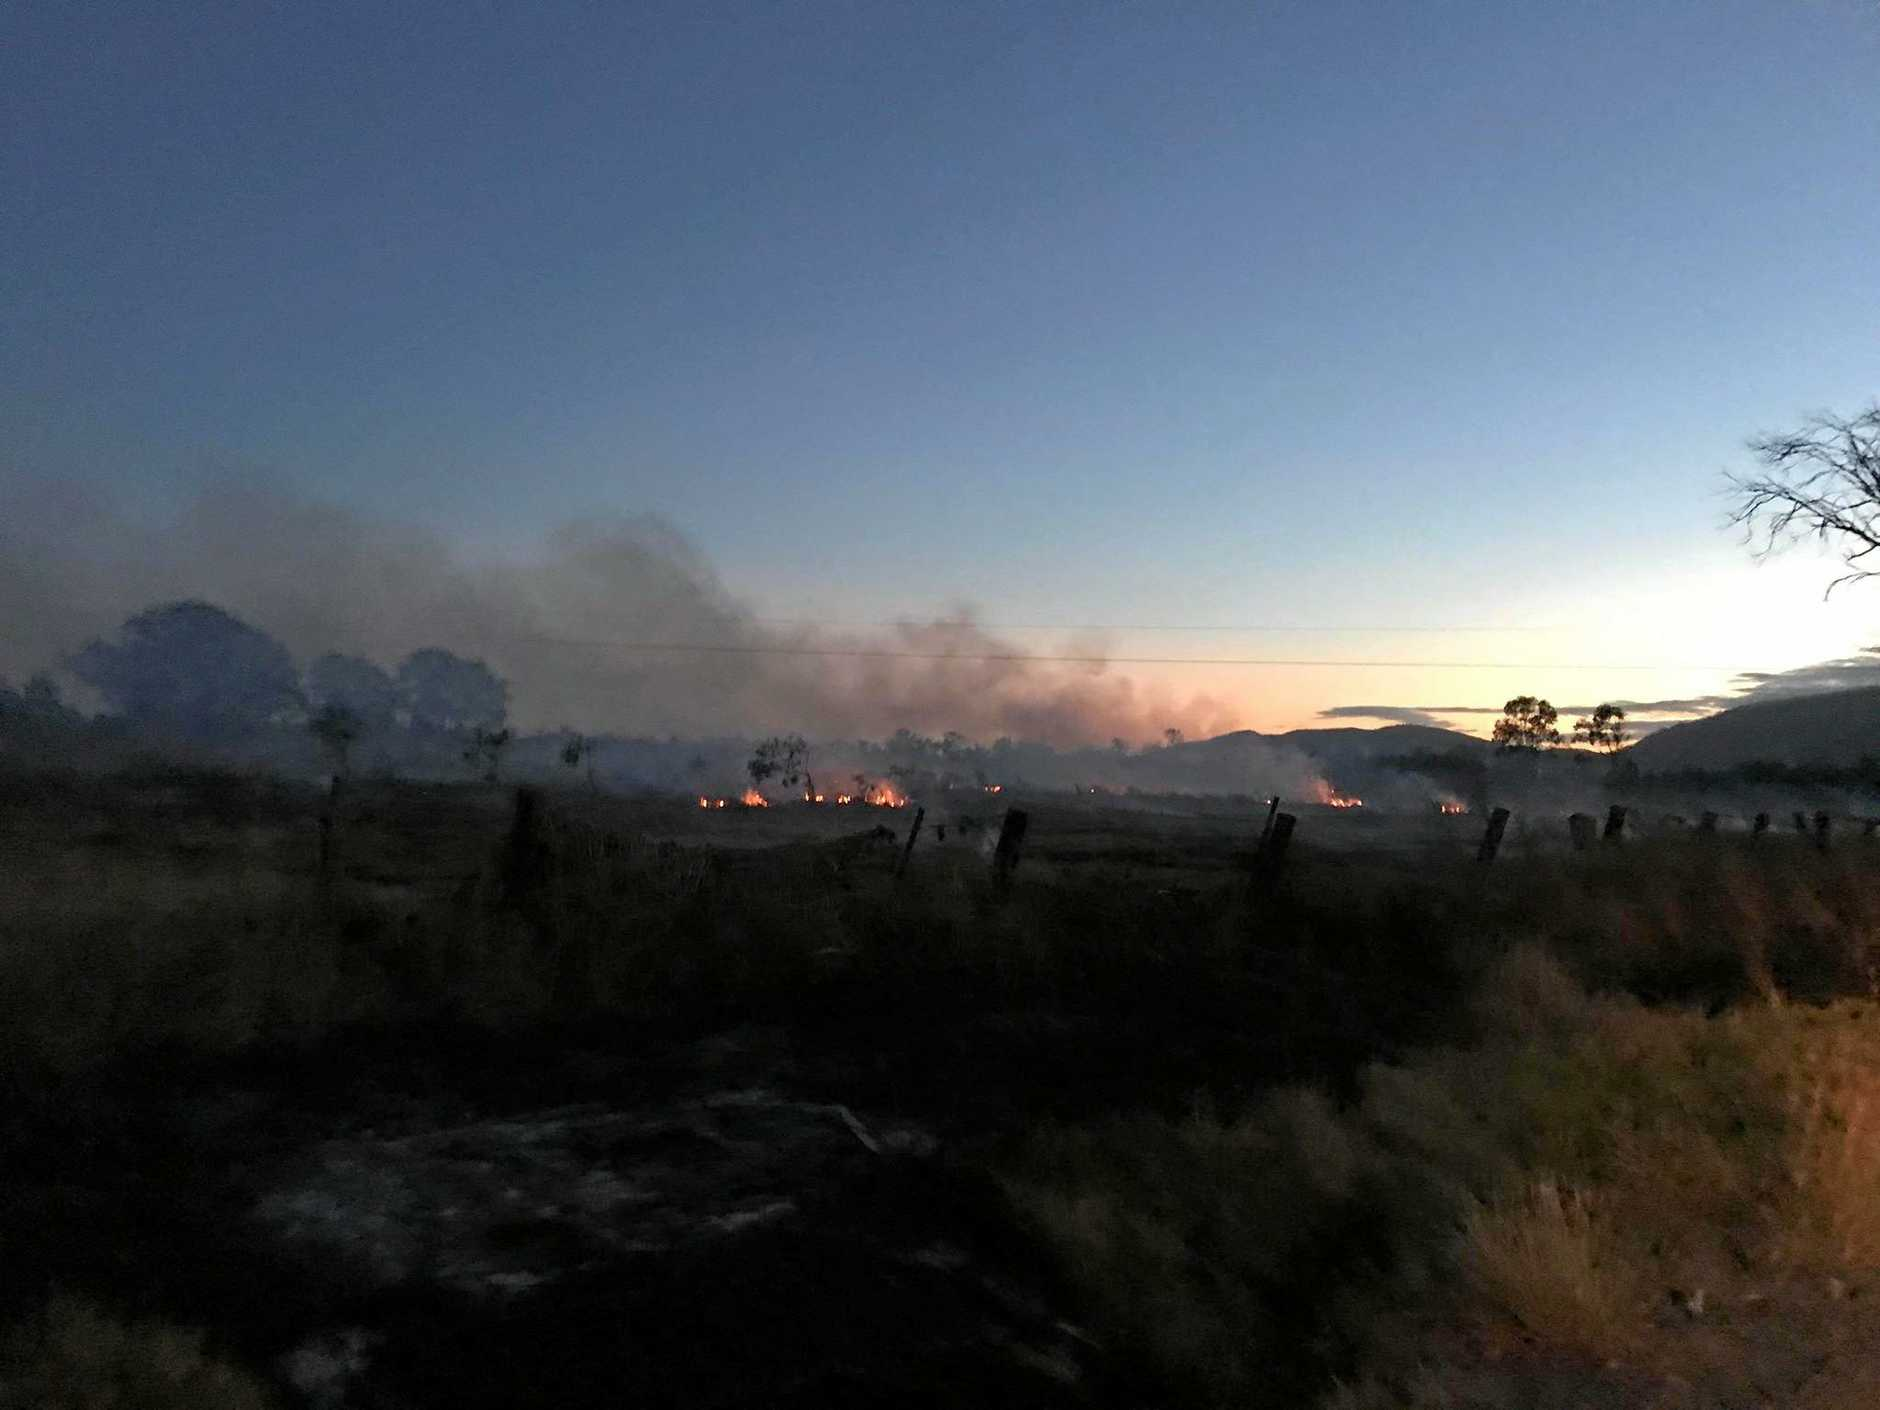 Photos from the backburning fire in bushland in the southern end of Quay St in Depot Hill early this morning.